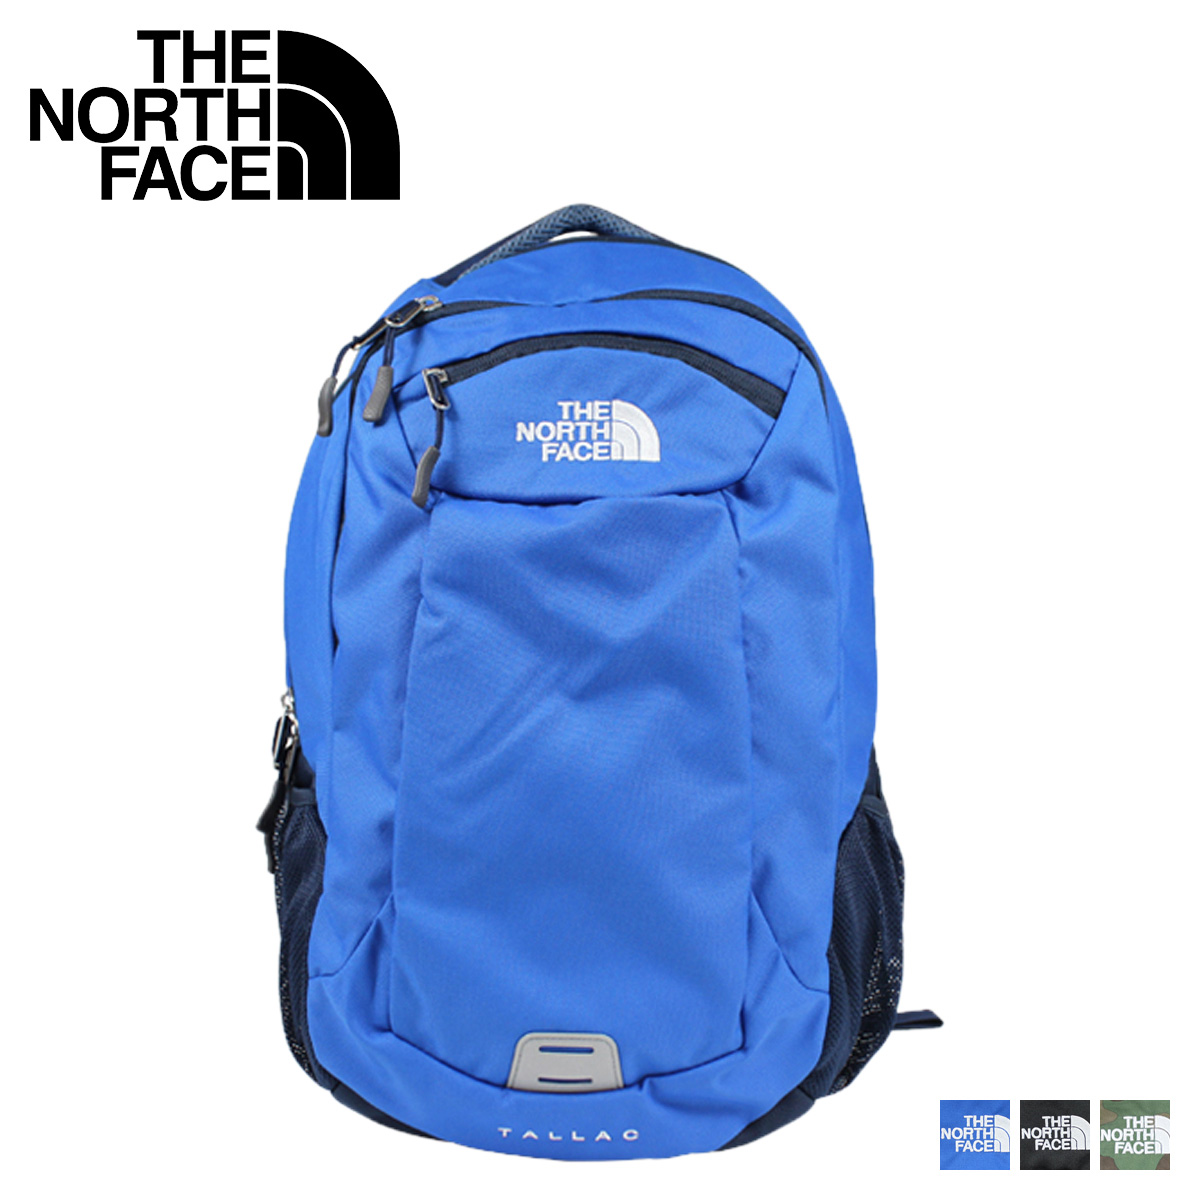 bff8941e0f56 The north face THE NORTH FACE backpack daypack mens backpack in 2014, new  CE89 3 color TALLAC BAKCPACK [11 / 28 new in stock] [regular] ★ ★